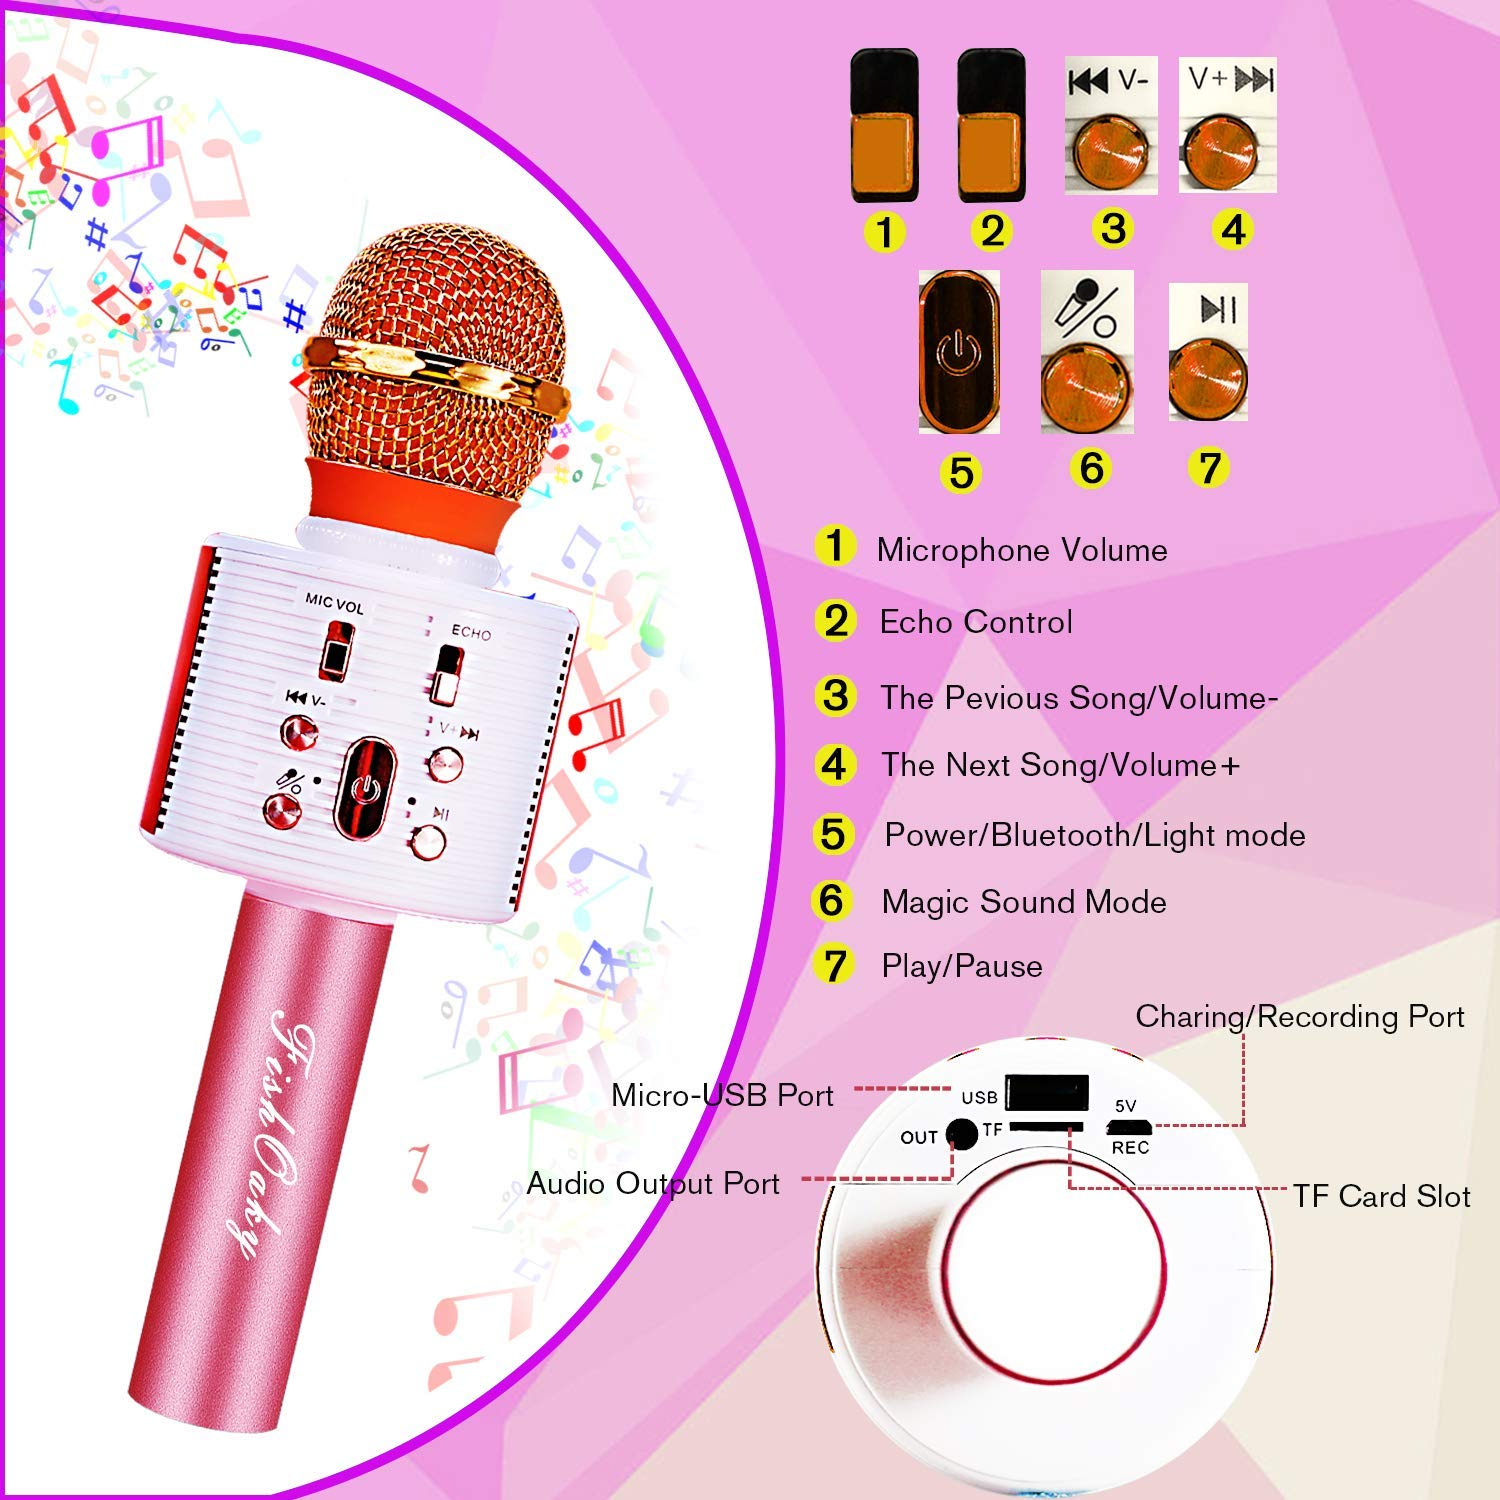 FishOaky Wireless Bluetooth Karaoke Microphone, Portable Kids Microphone Karaoke Player Speaker with LED & Music Singing Voice Recording for Home KTV Kids Outdoor Birthday Party (Rose Gold) by FishOaky (Image #2)